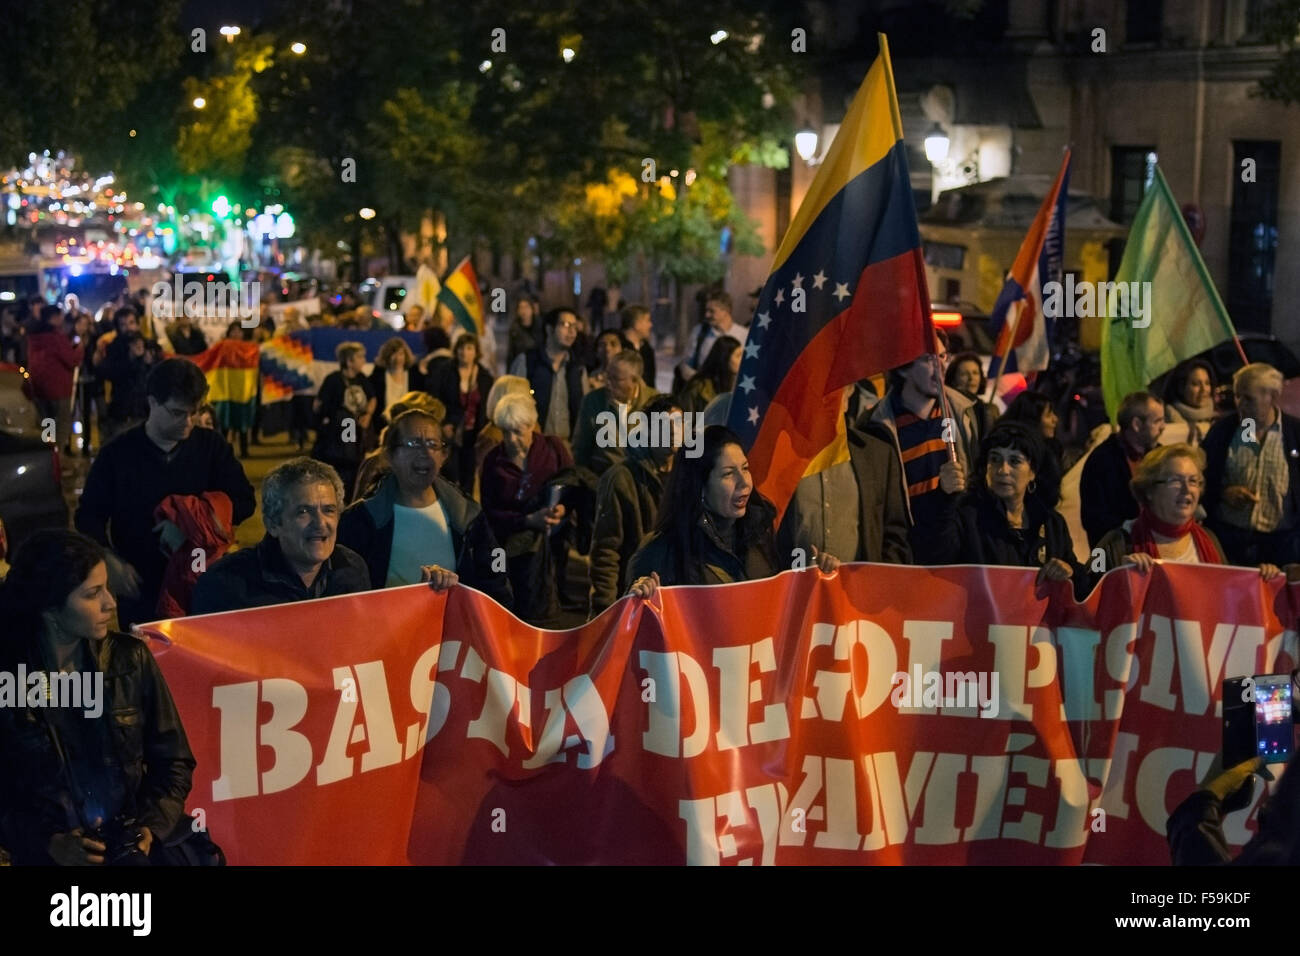 Madrid, Spain. 30th Oct, 2015. People hold banner and shout slogans during a demonstration against imperialism in - Stock Image